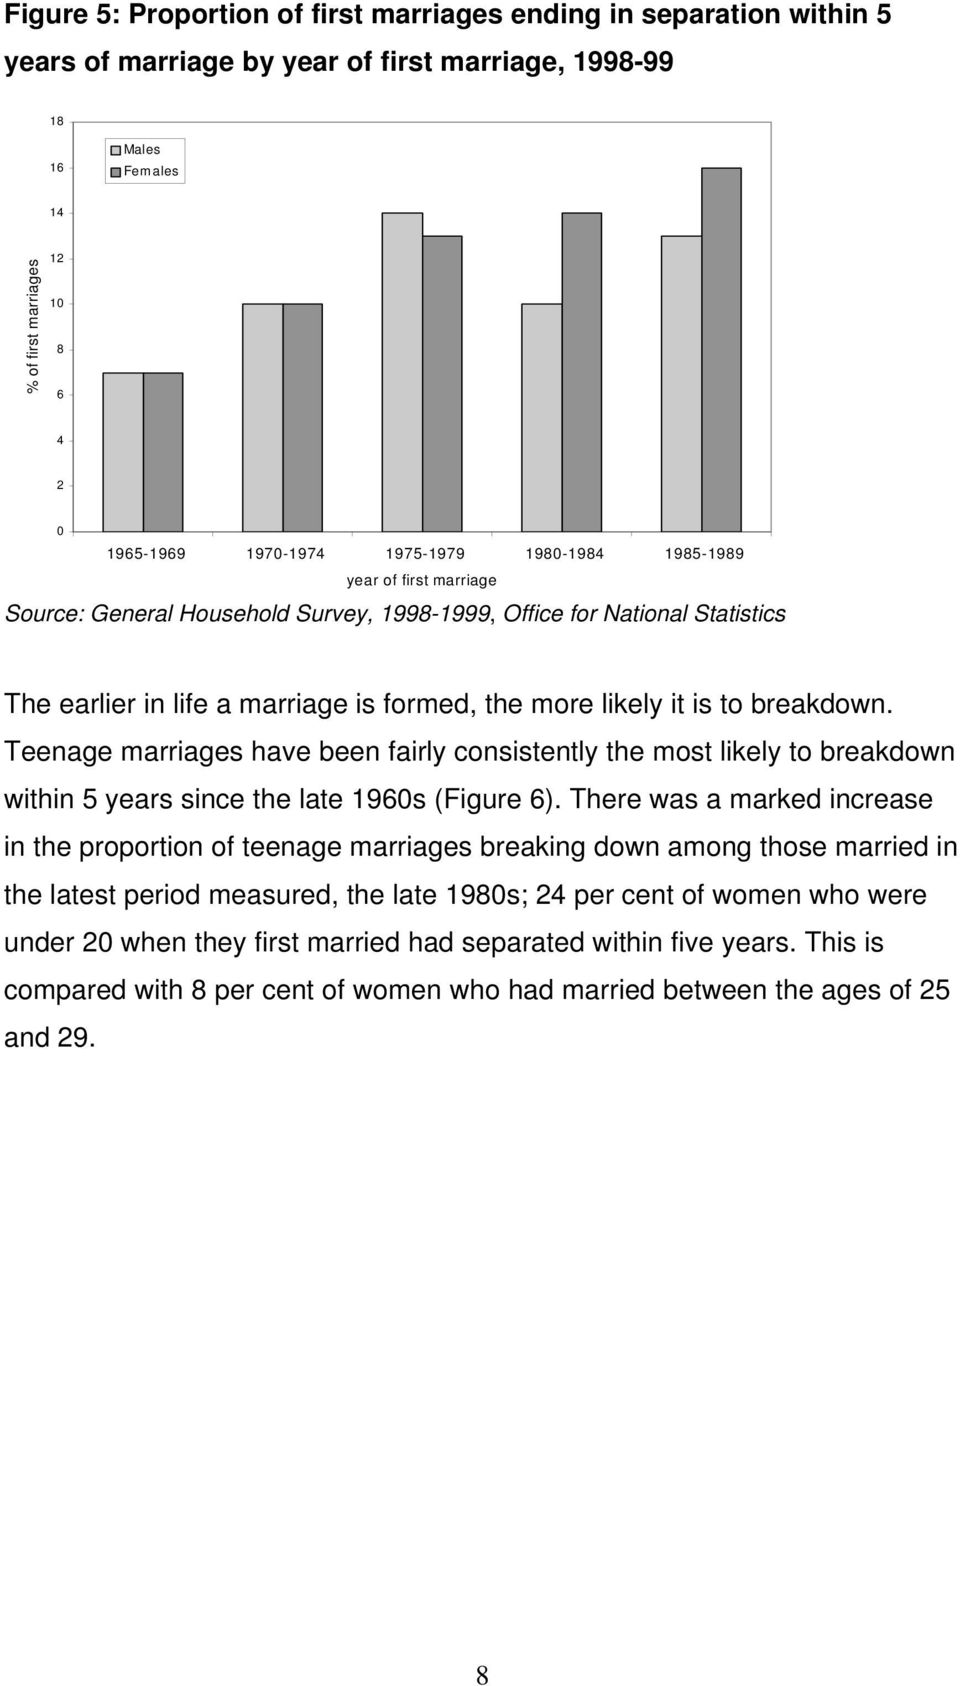 is to breakdown. Teenage marriages have been fairly consistently the most likely to breakdown within 5 years since the late 1960s (Figure 6).